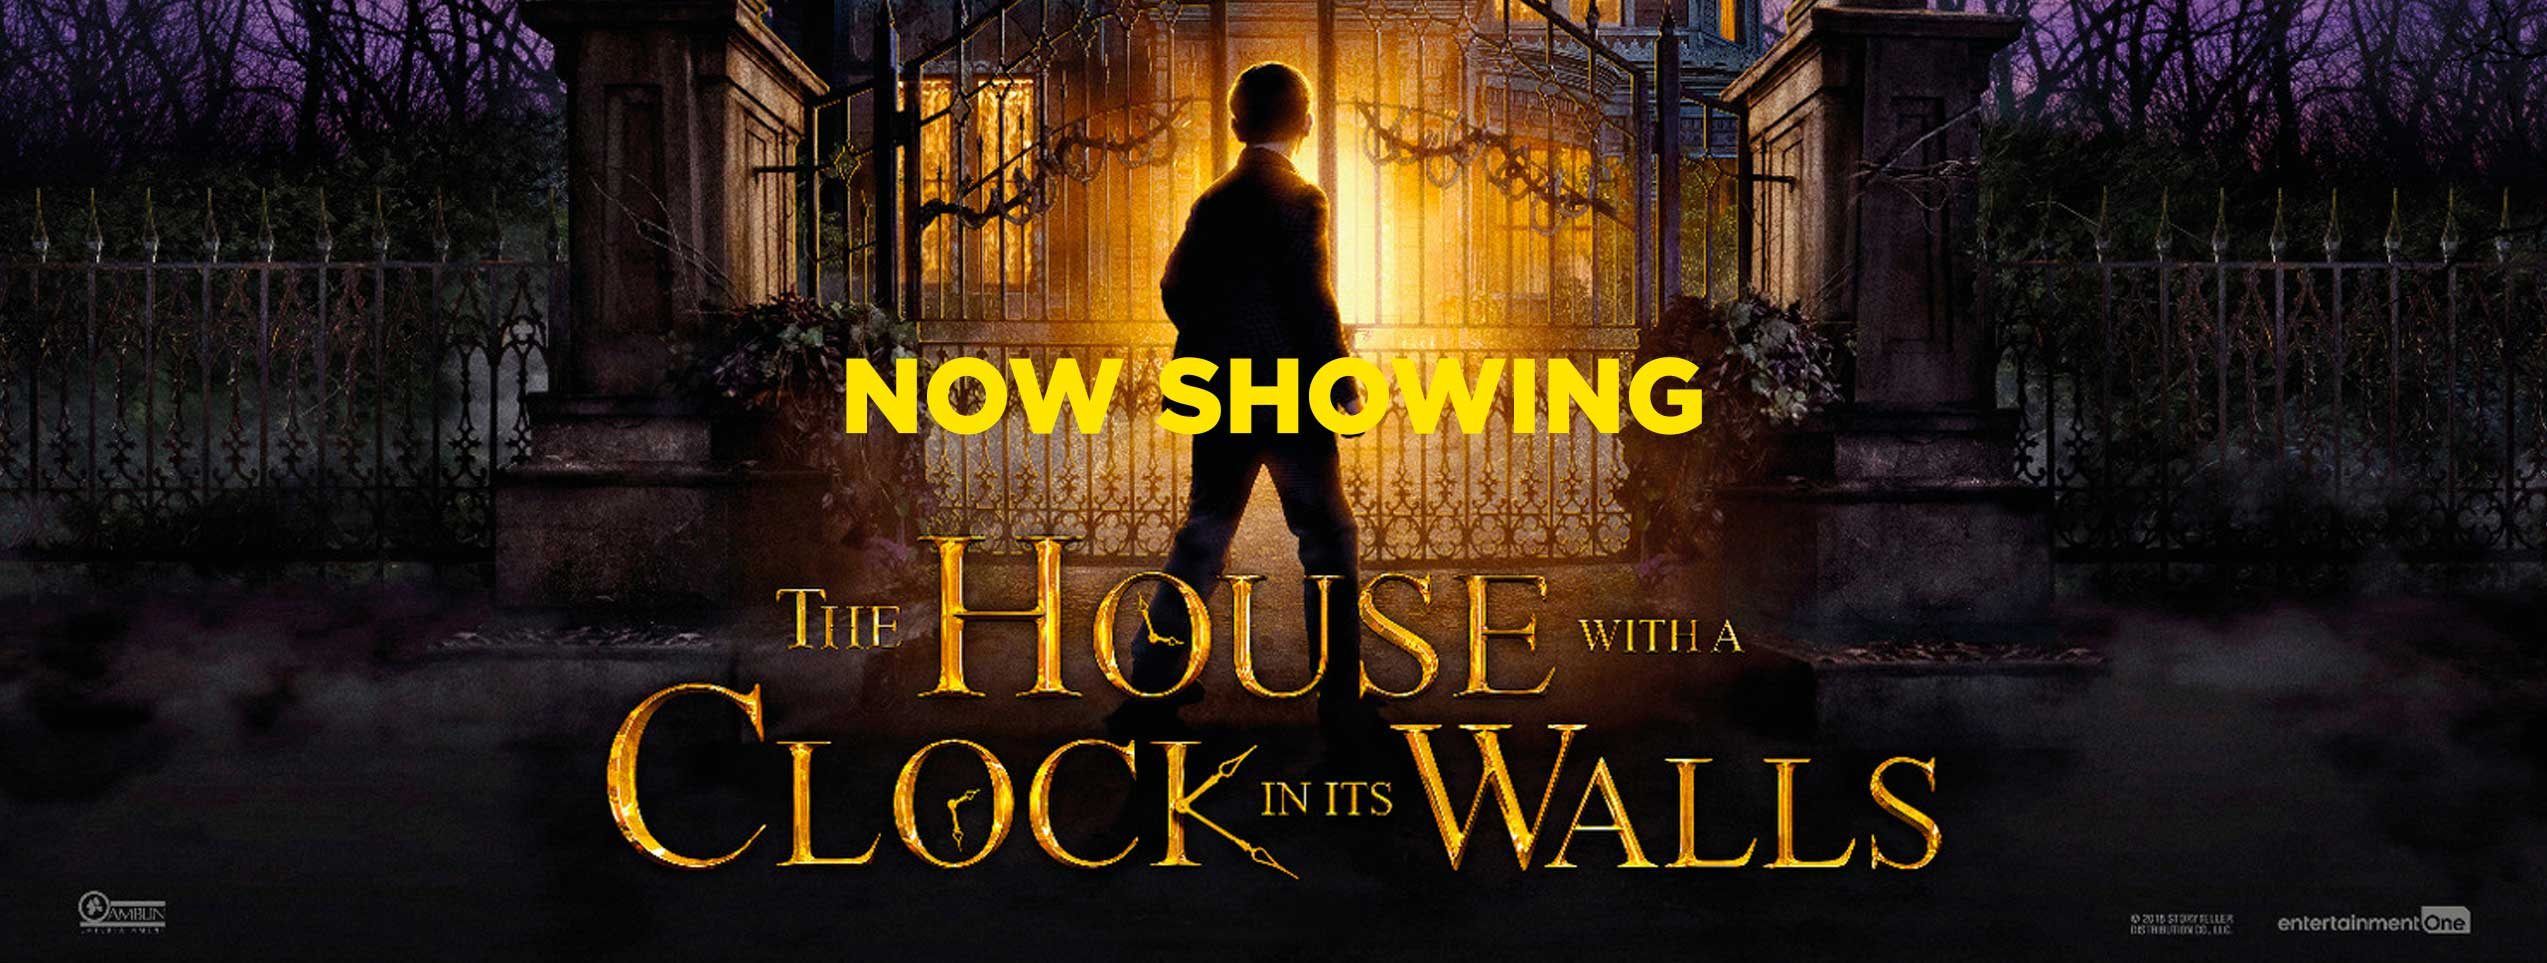 House with a Clock in Its Walls (2D) (PG) (Eng)